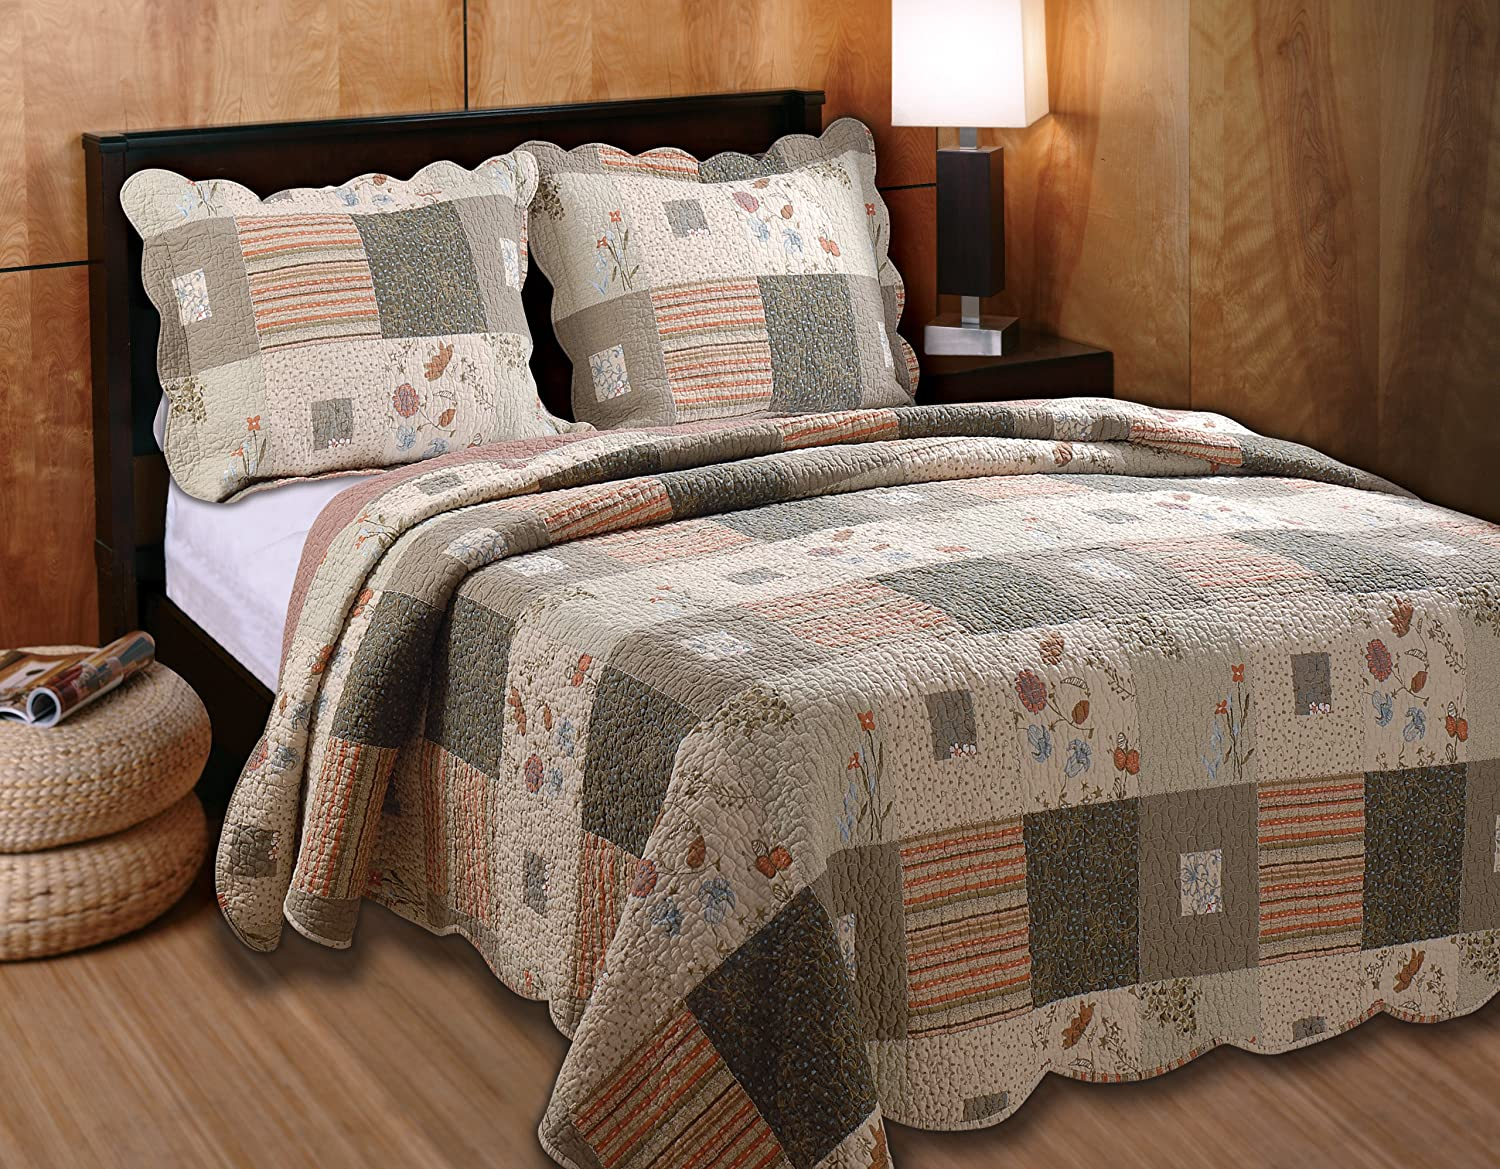 Amazon: Greenland Home Sedona King 3piece Quilt Set: Home & Kitchen